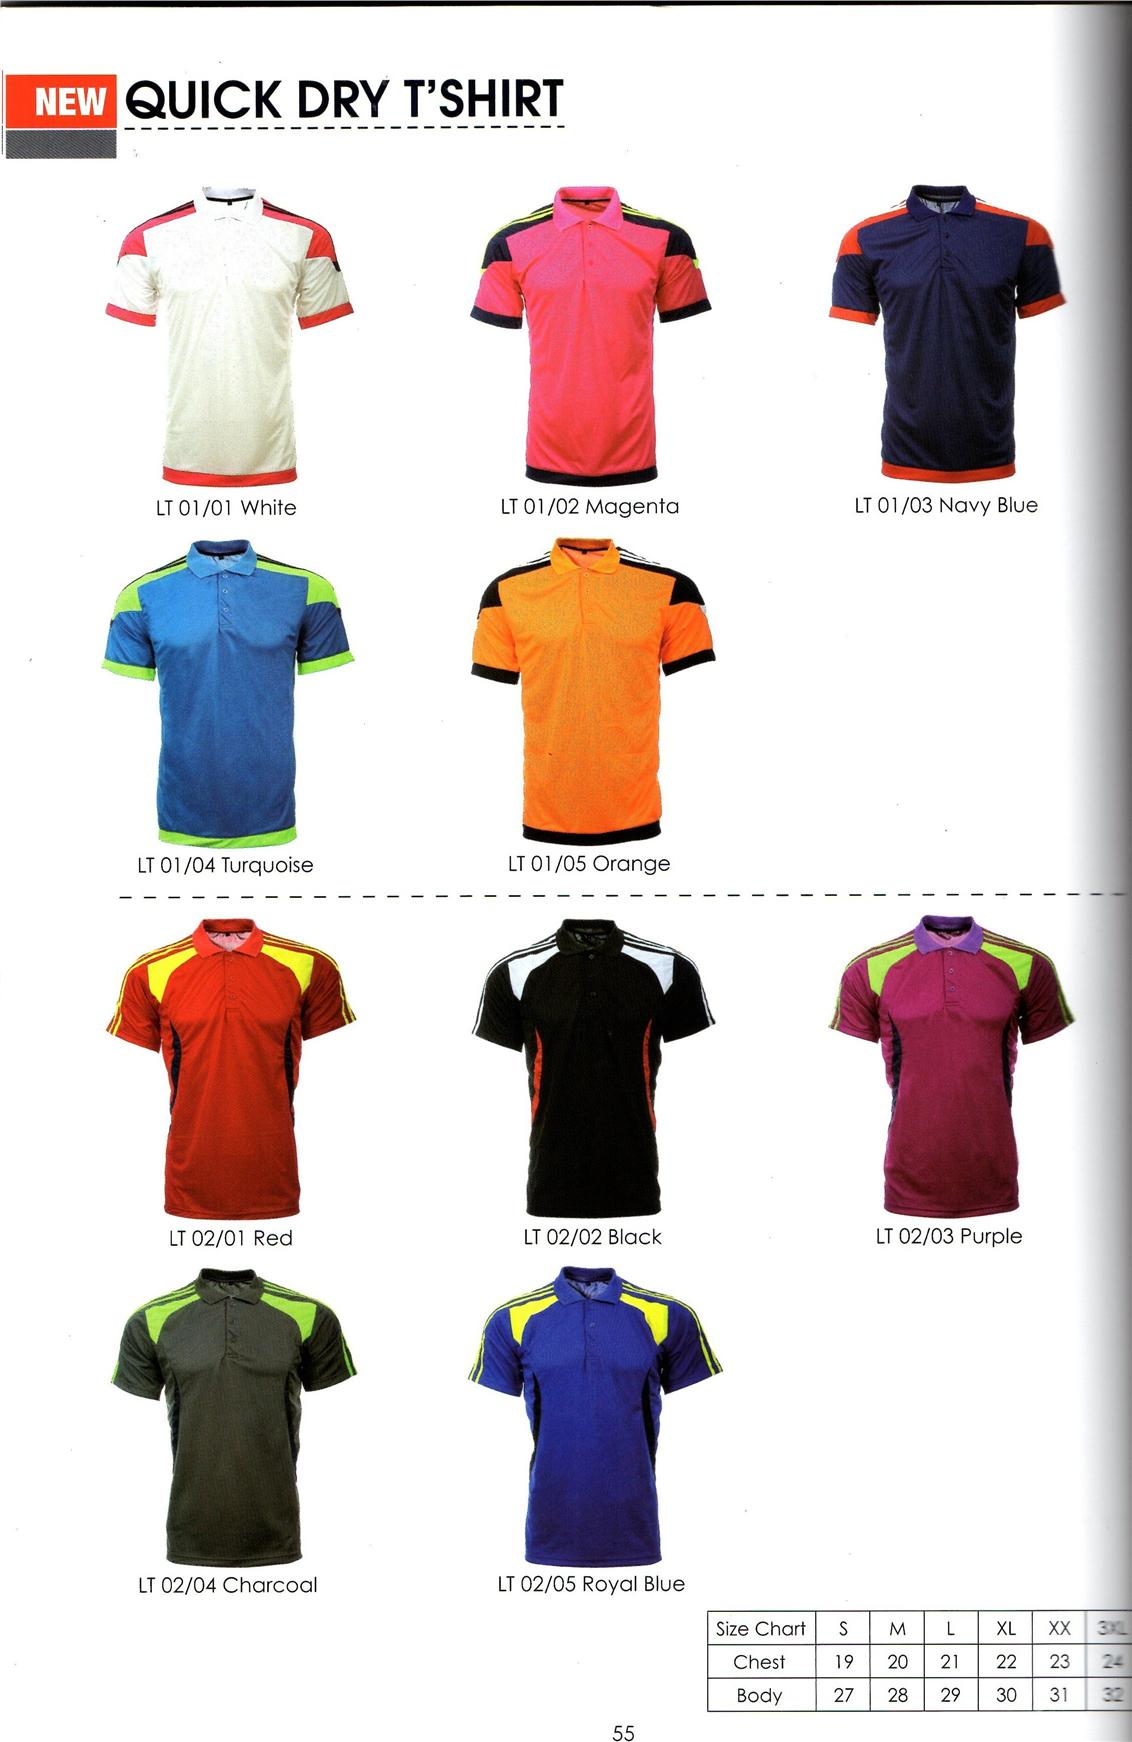 Collar Short Sleeves Polo T Shirt Kemeja Lengan Pendek Kolar Quick Dry